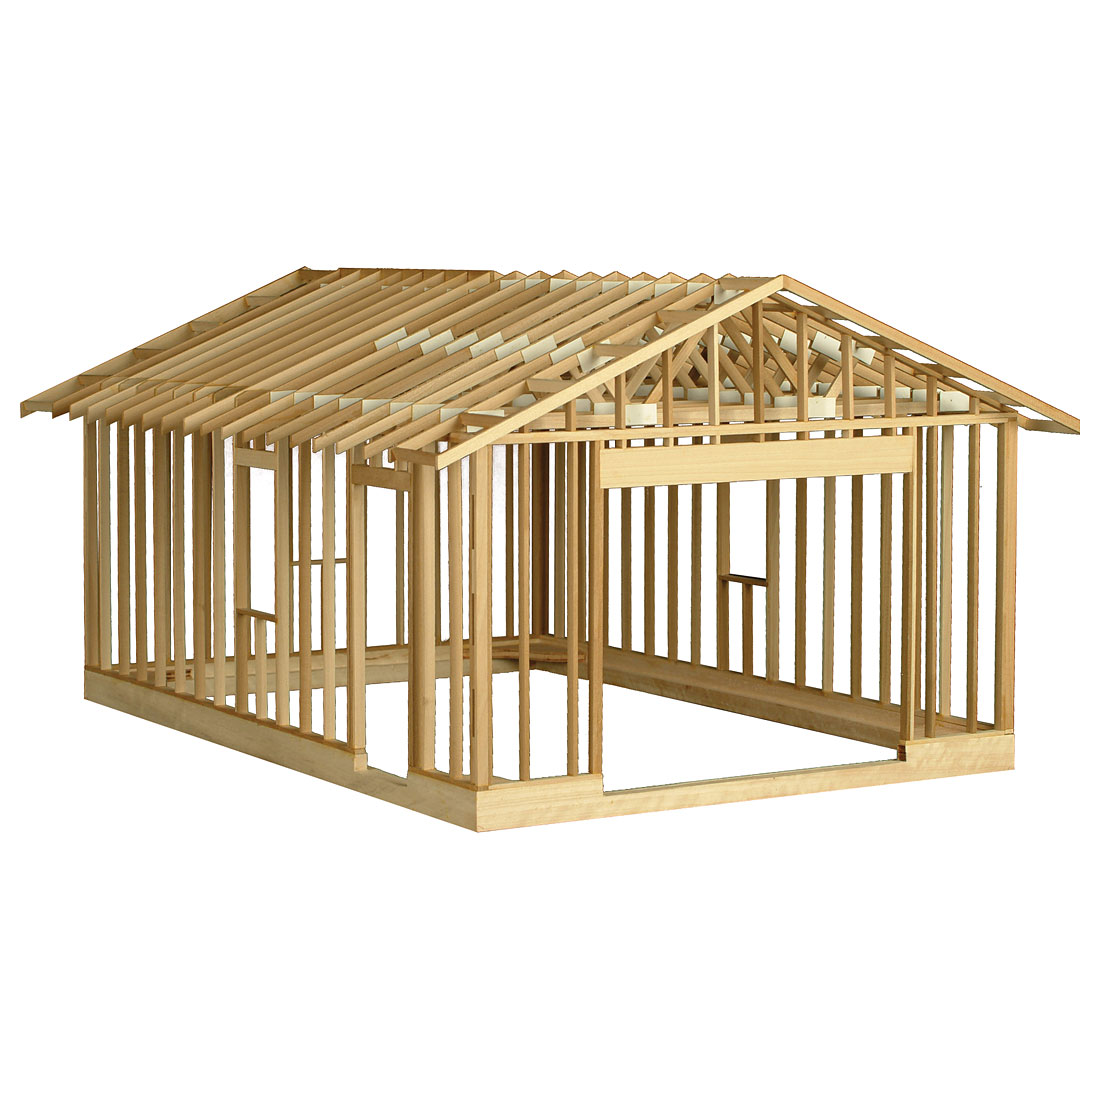 Garage Framing Kit 201 (W31574)